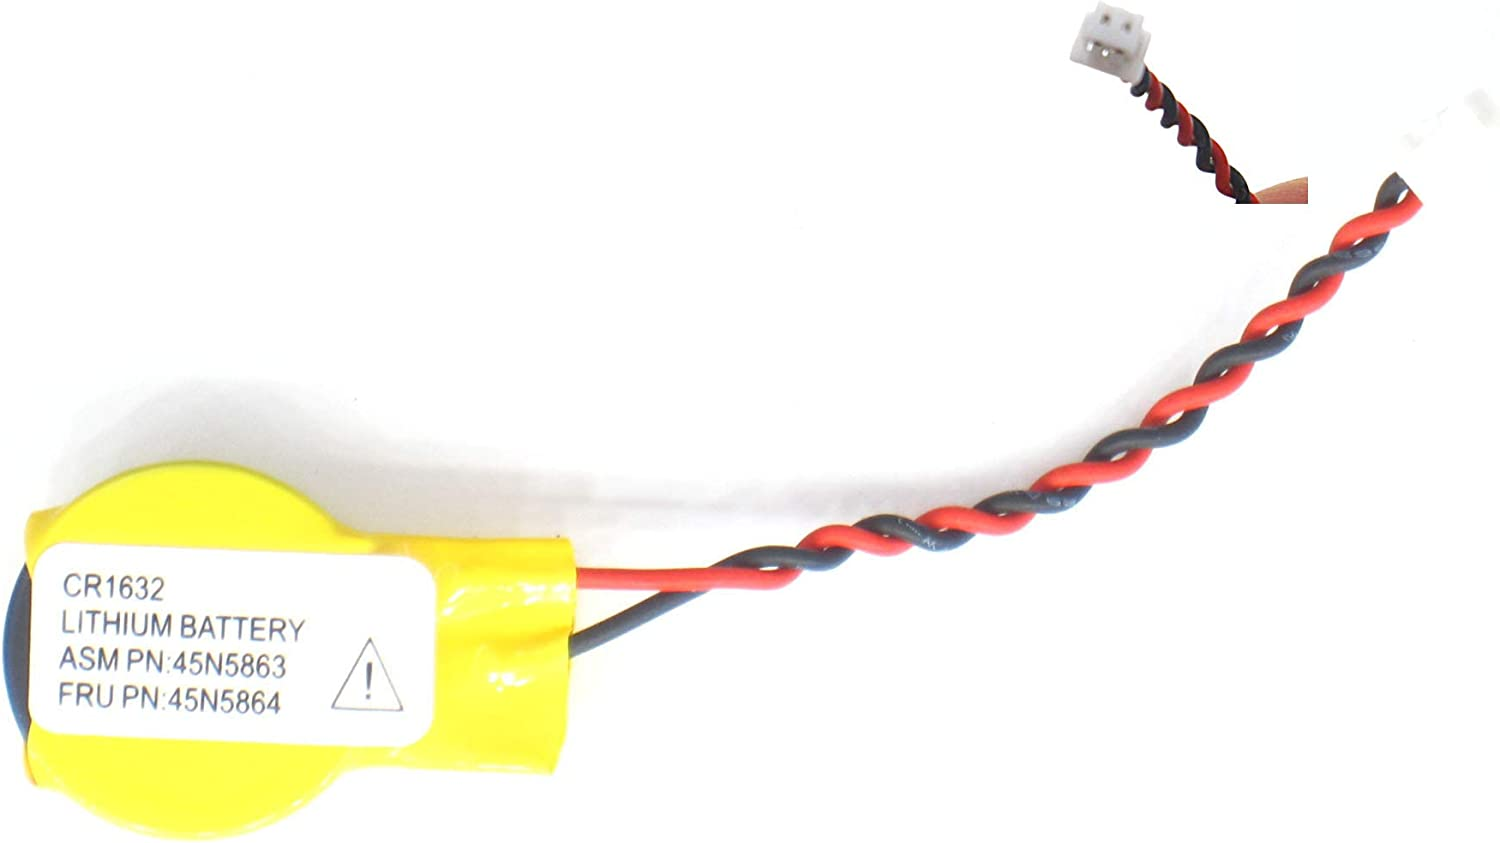 Replacement CMOS Battery for Lenovo Thinkpad X300 X301 X220 X220i X230 X230i X240 X240i X250 X260 X270 Yoga S1